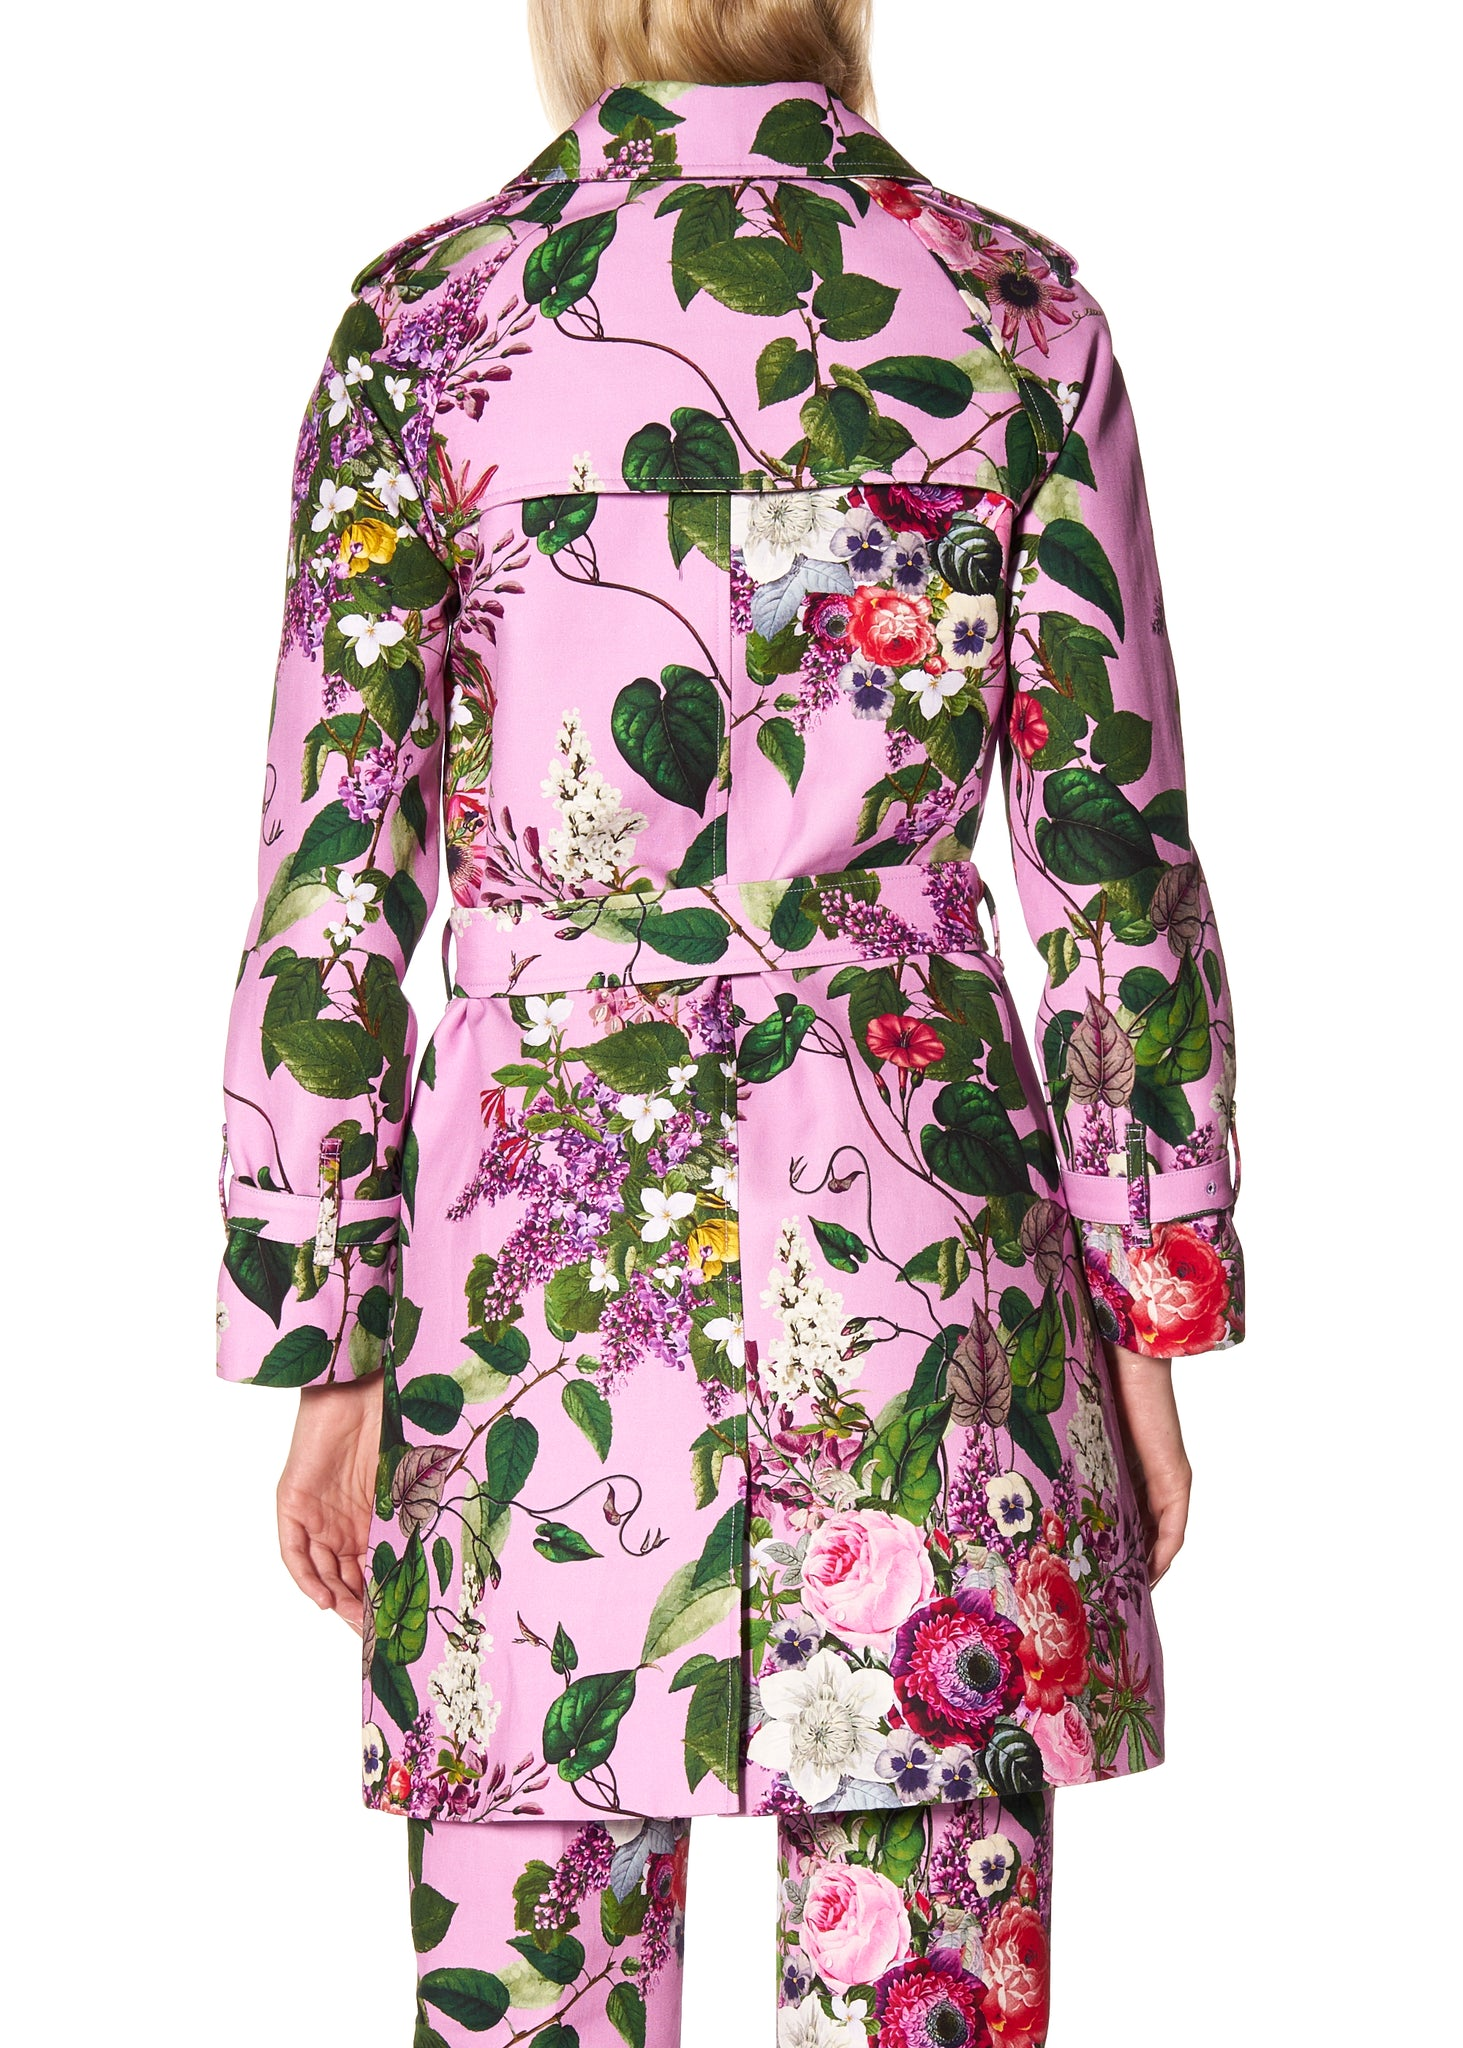 'HAMISH FLORAL' TRENCH COAT - Women's Jackets & Coats - Libertine